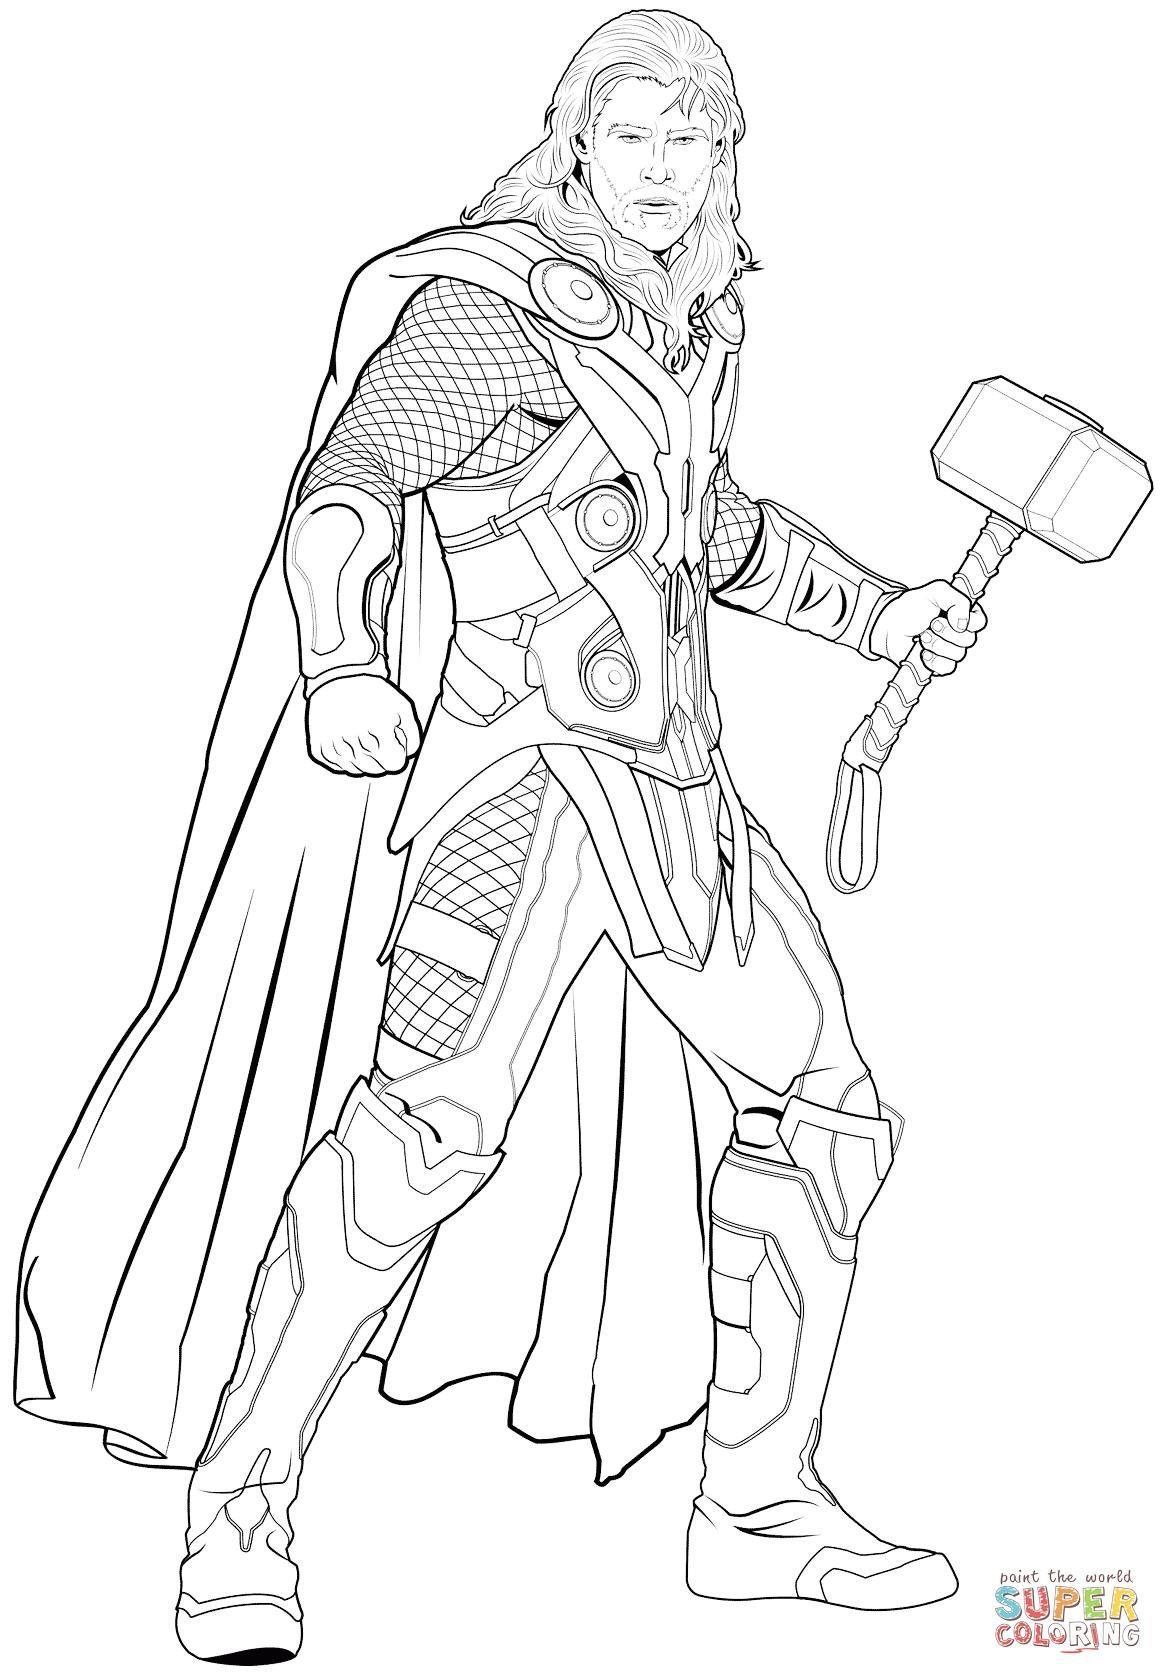 coloring picture avengers thor avengers drawing at getdrawings free download avengers coloring picture